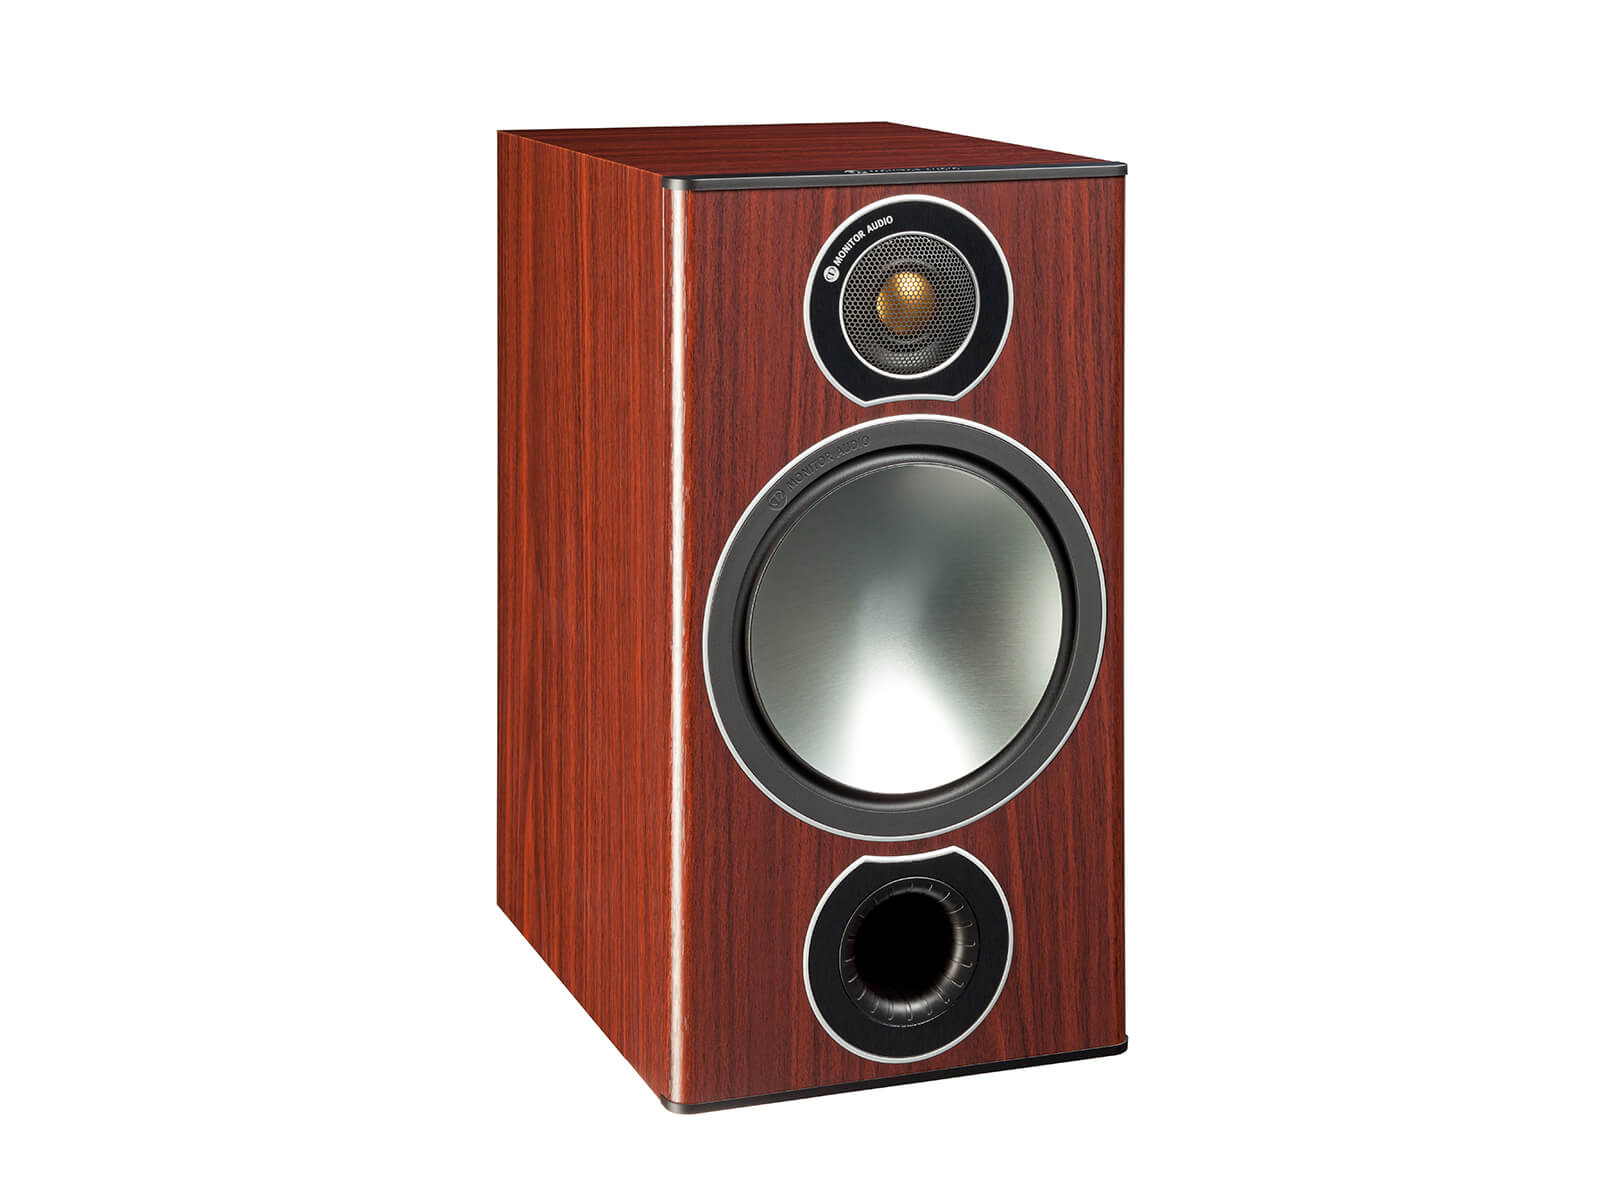 Bronze 2, grille-less bookshelf speakers, with a rosemah vinyl finish.